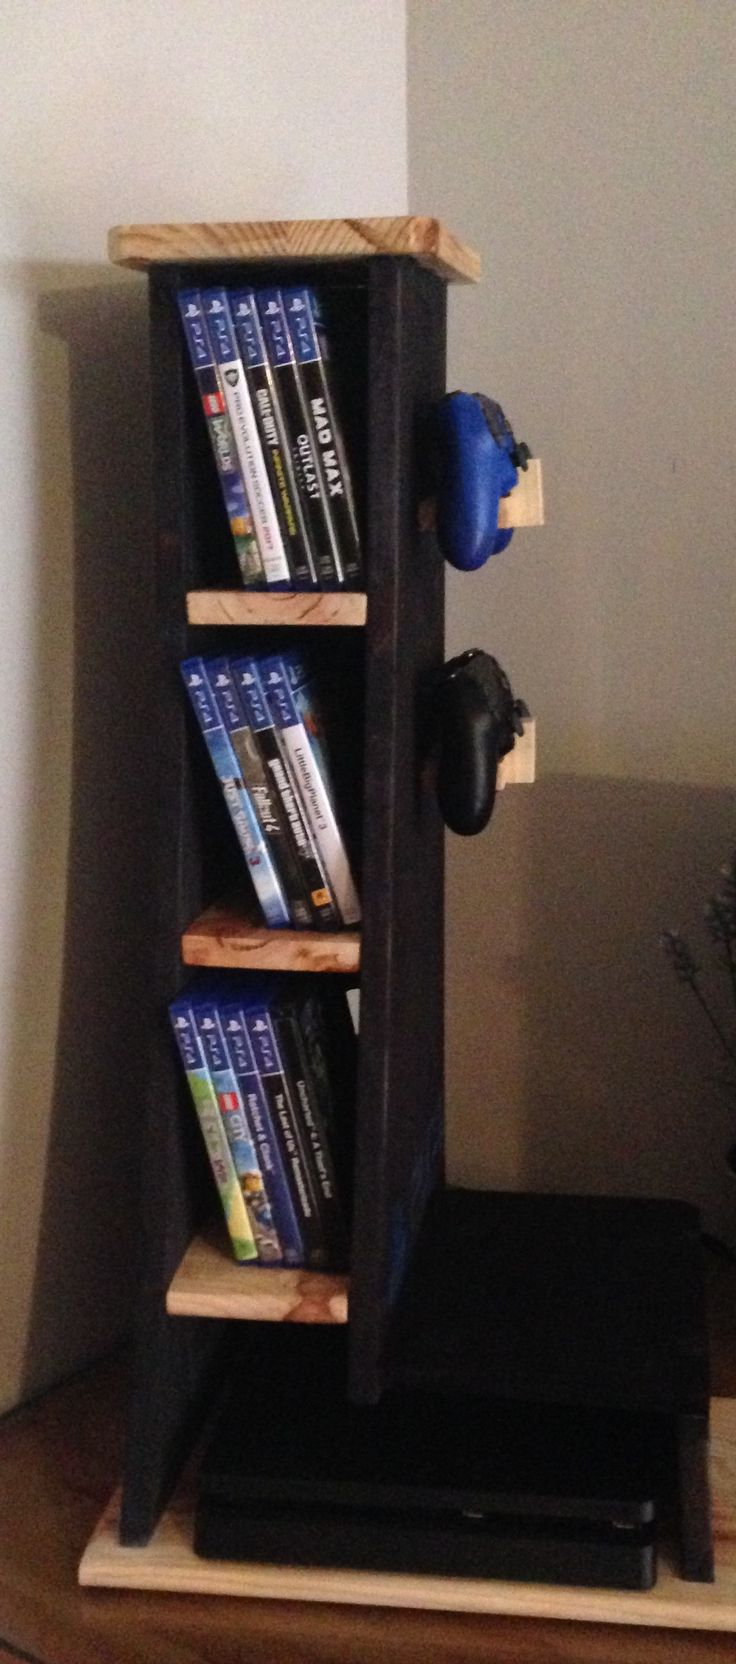 Horizontal shelf for consoles PS4, XBOX etc … made by hand in solid wood. Order on request. Price: 60 euros. WhatsApp 649973761 Email wo …